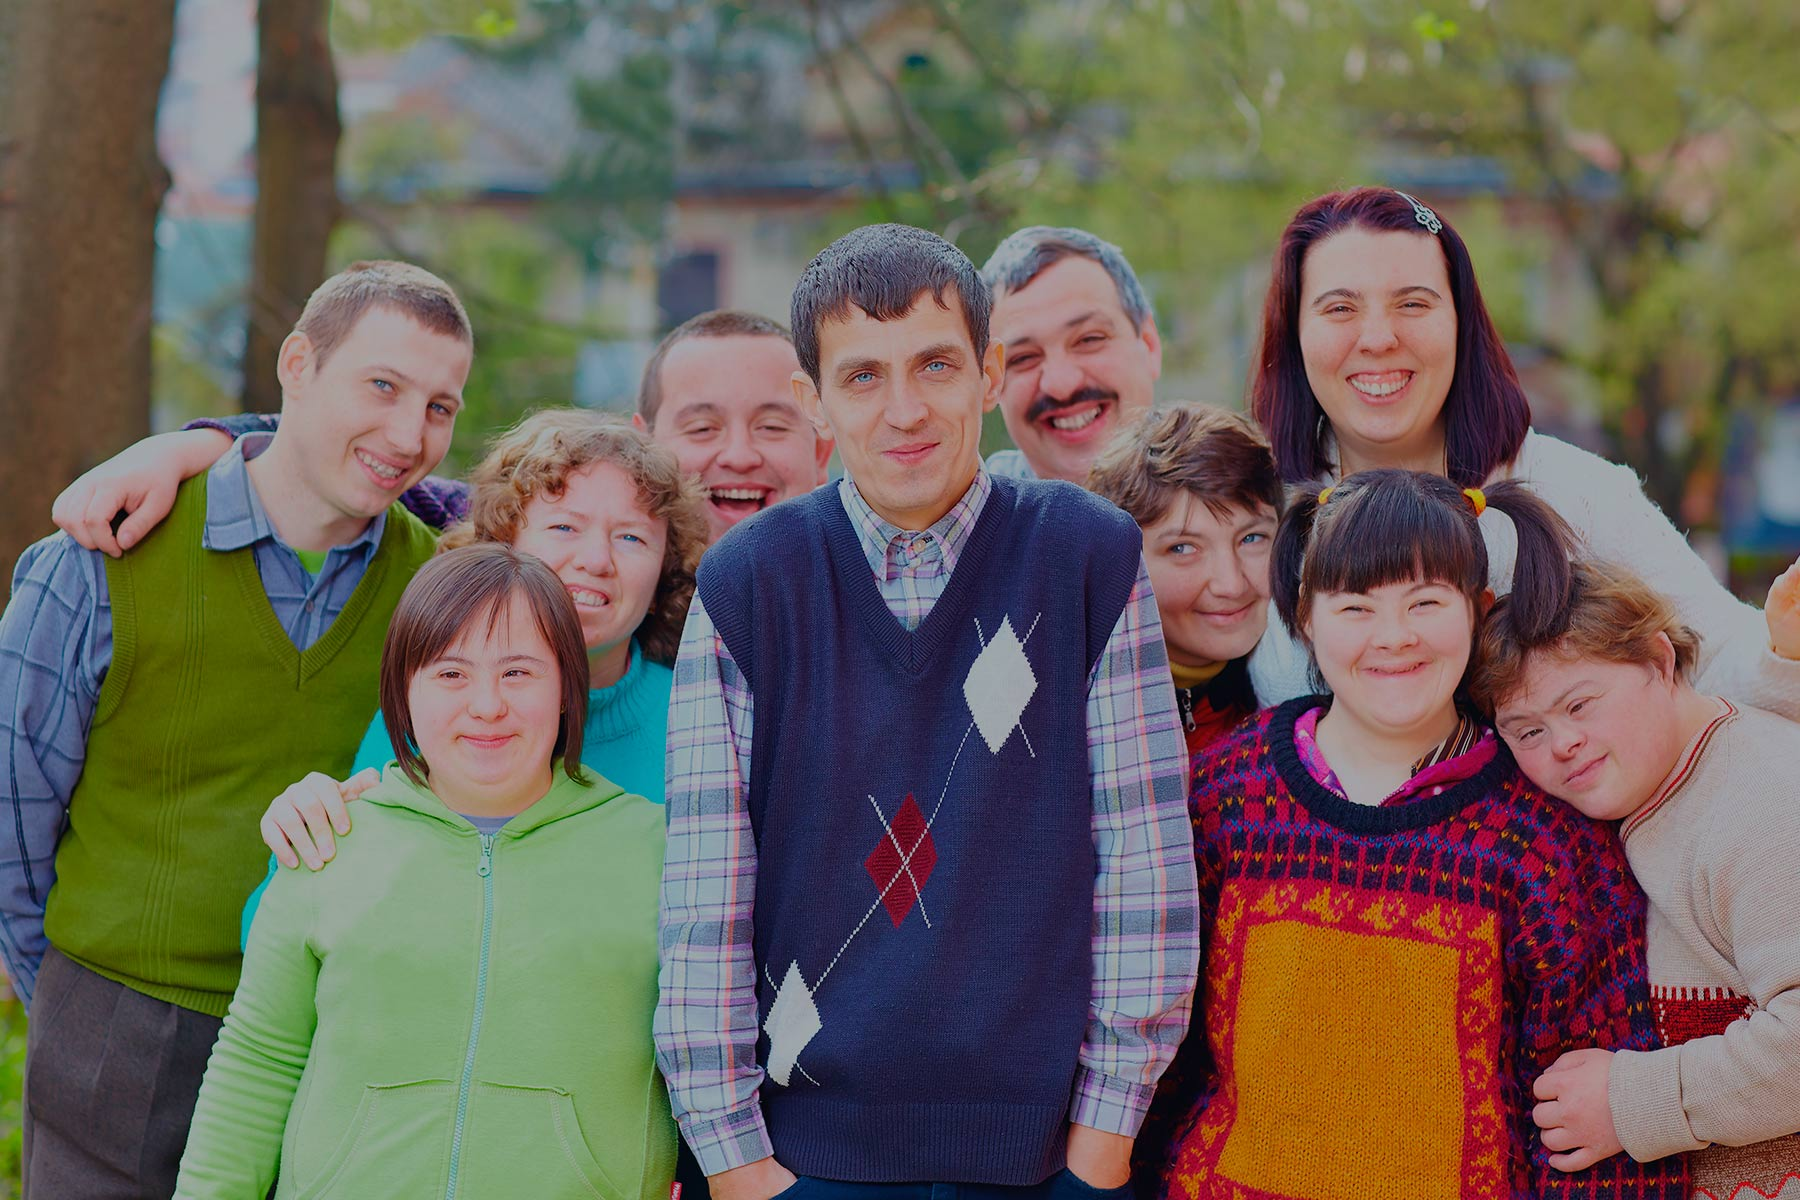 A group of smiling special needs children and adults